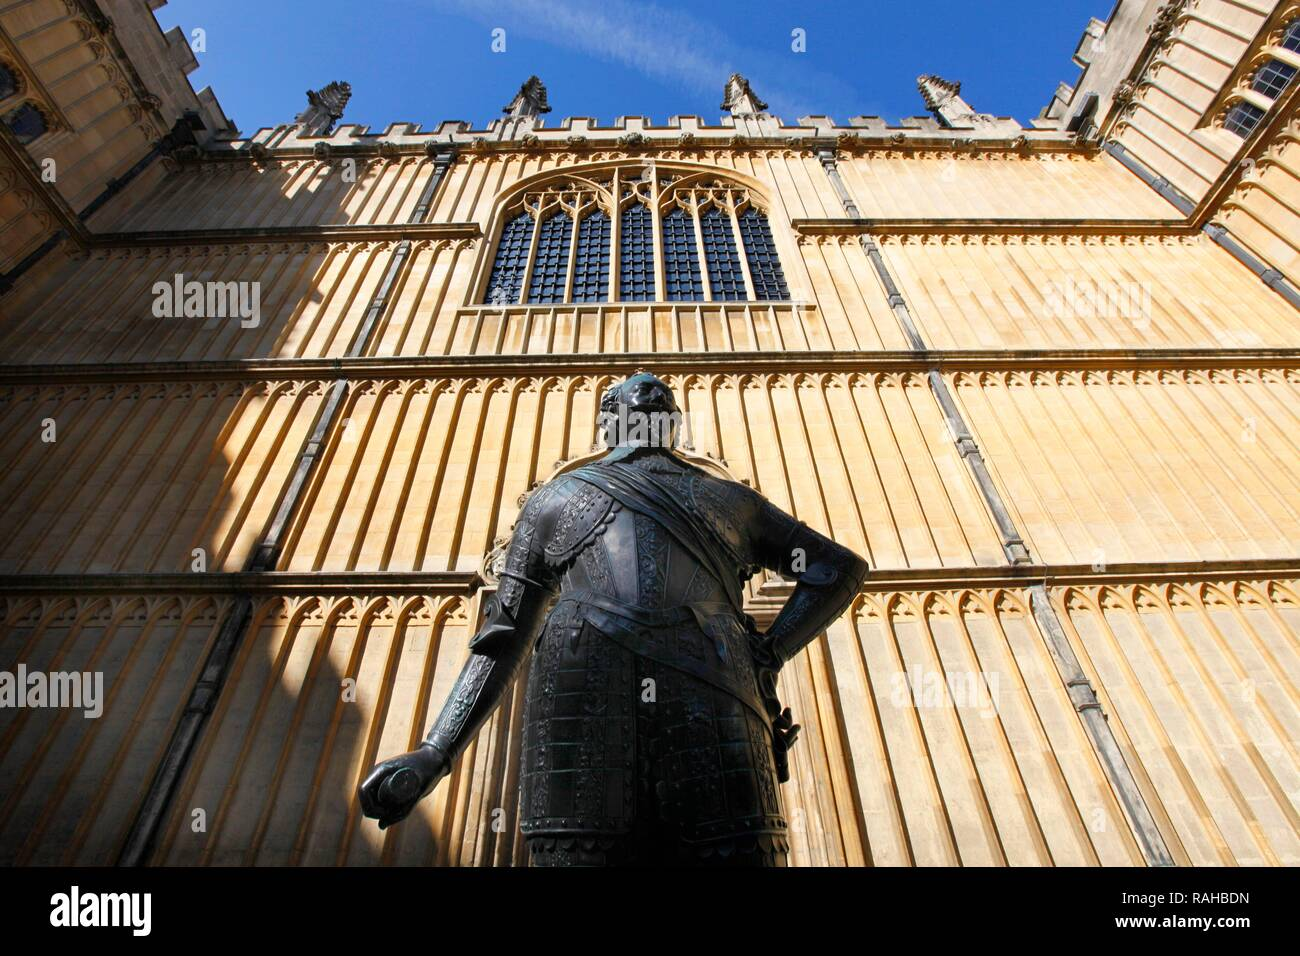 Statue in front of the Bodleian Library, main library of the University of Oxford, Oxford, Oxfordshire, United Kingdom, Europe - Stock Image